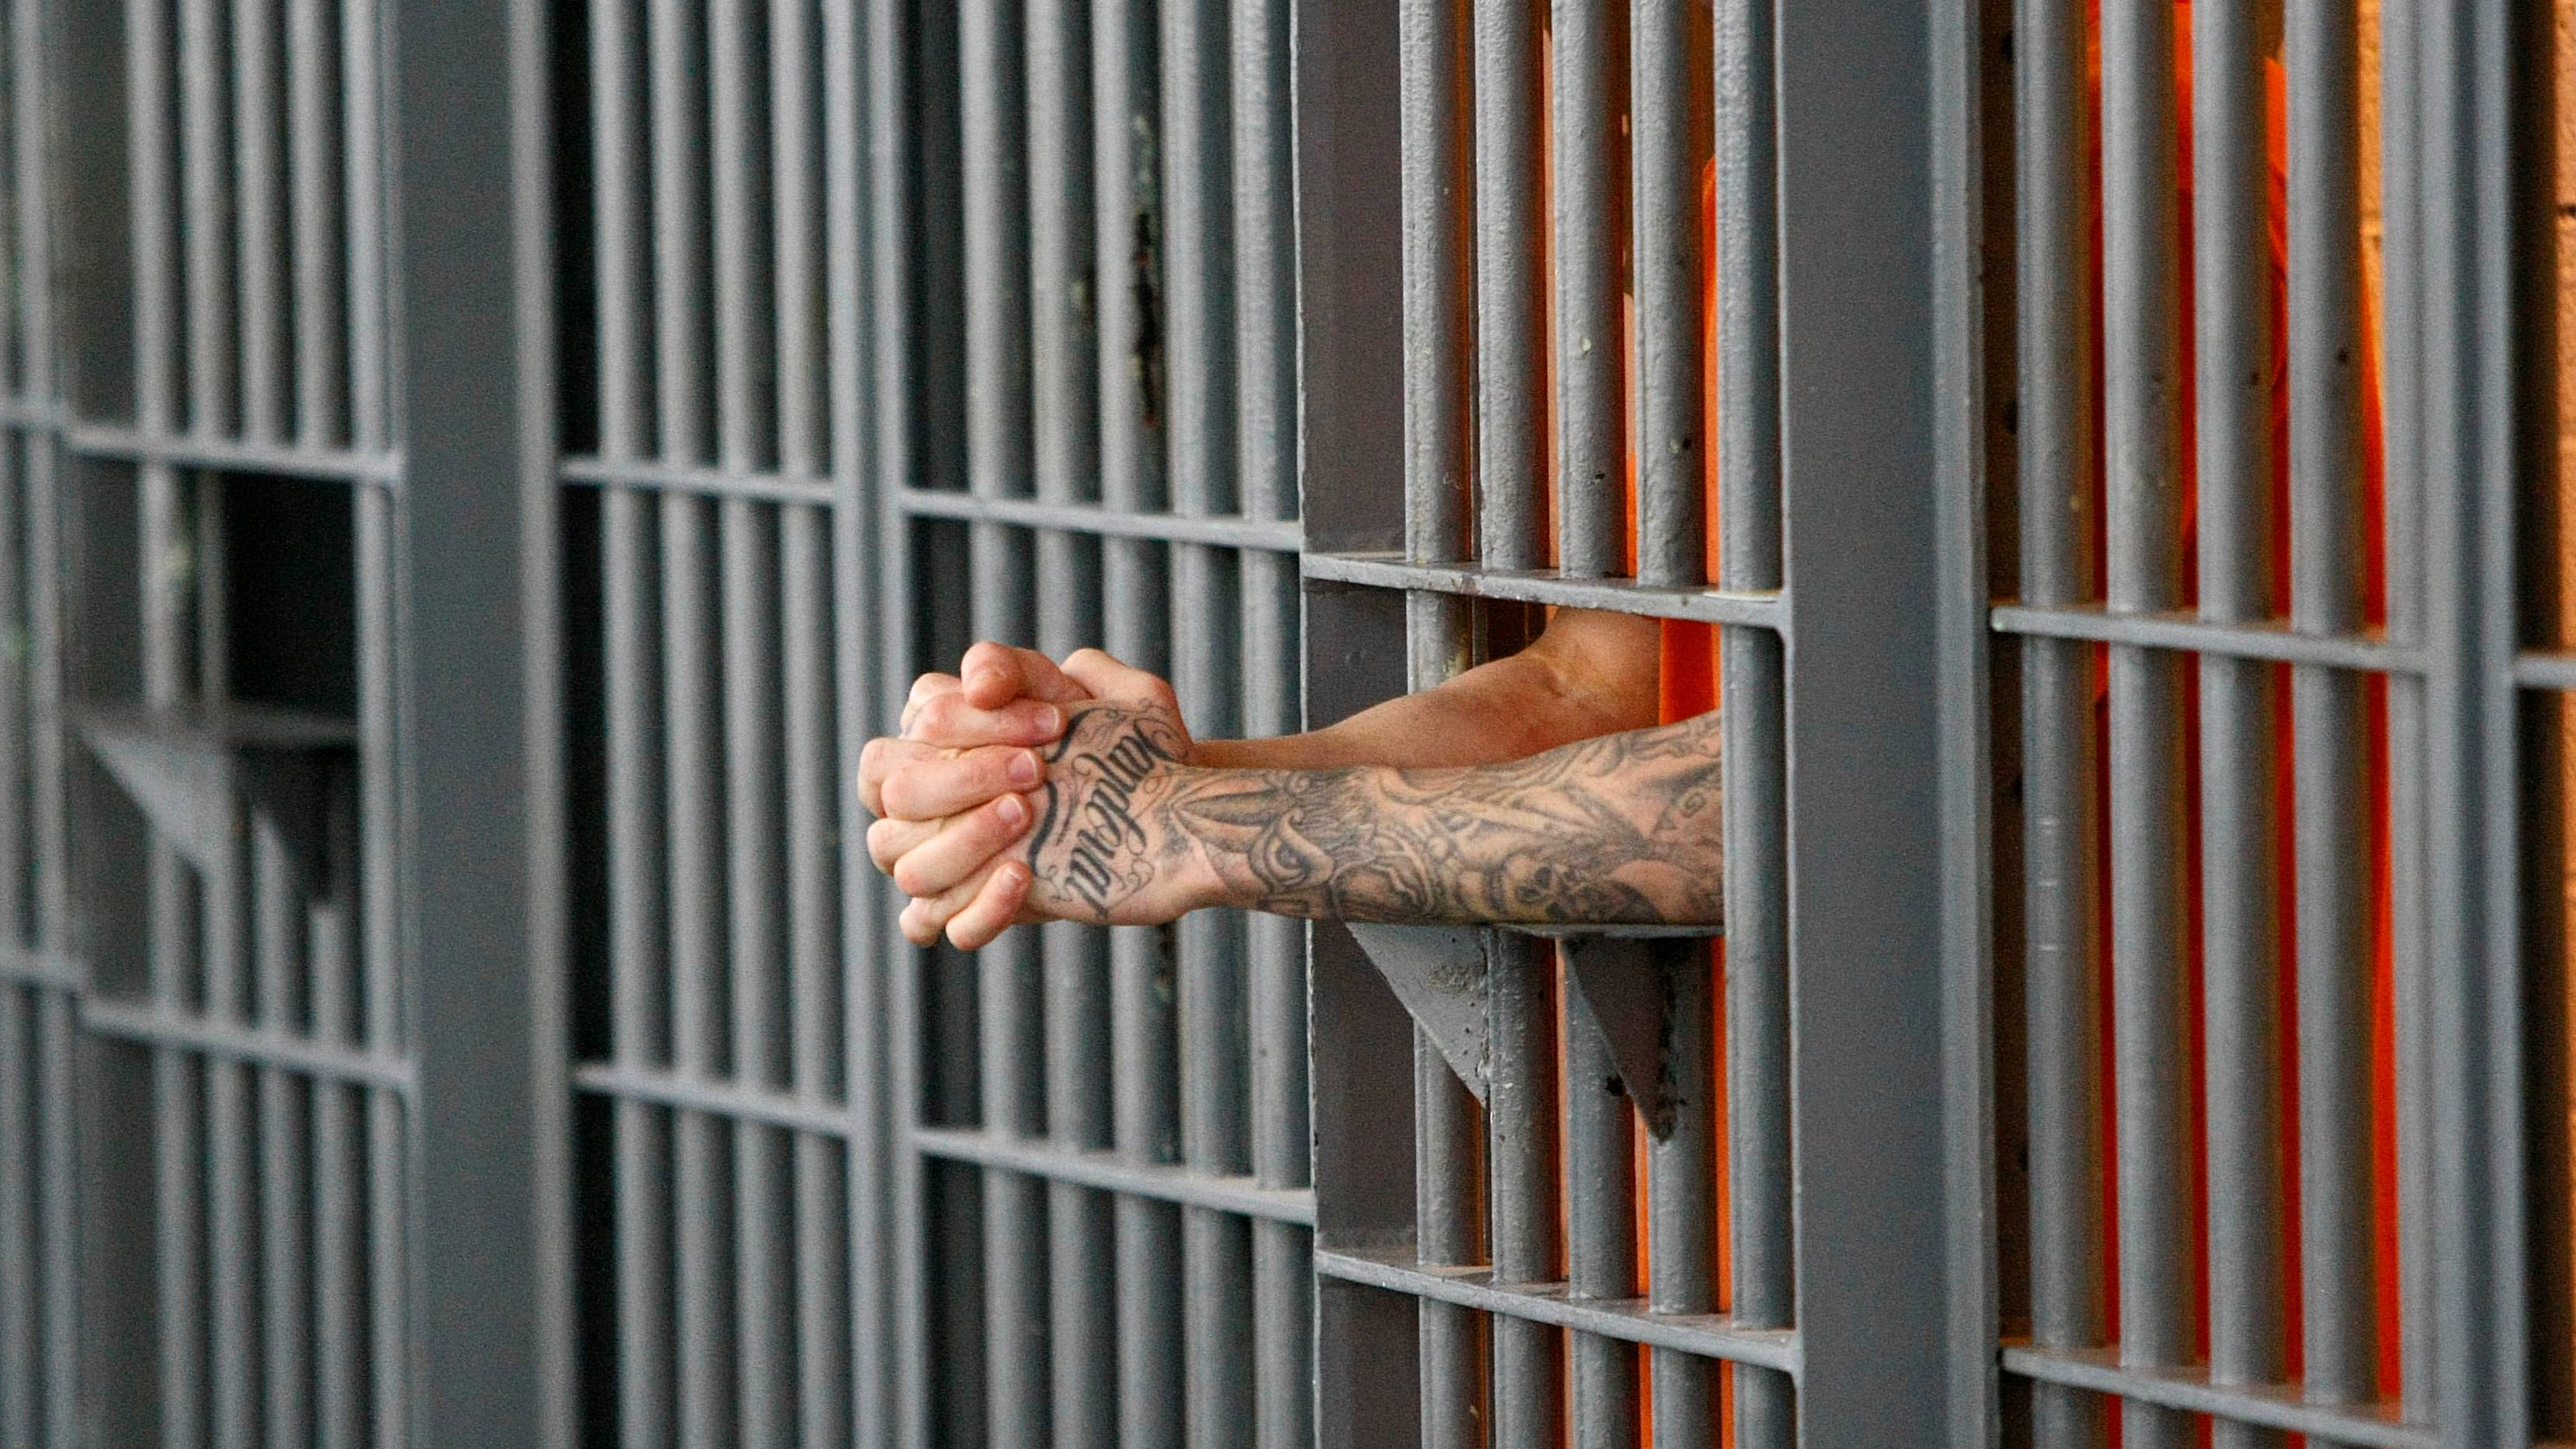 United States Senate Approves Massive New Criminal Justice Reform Bill